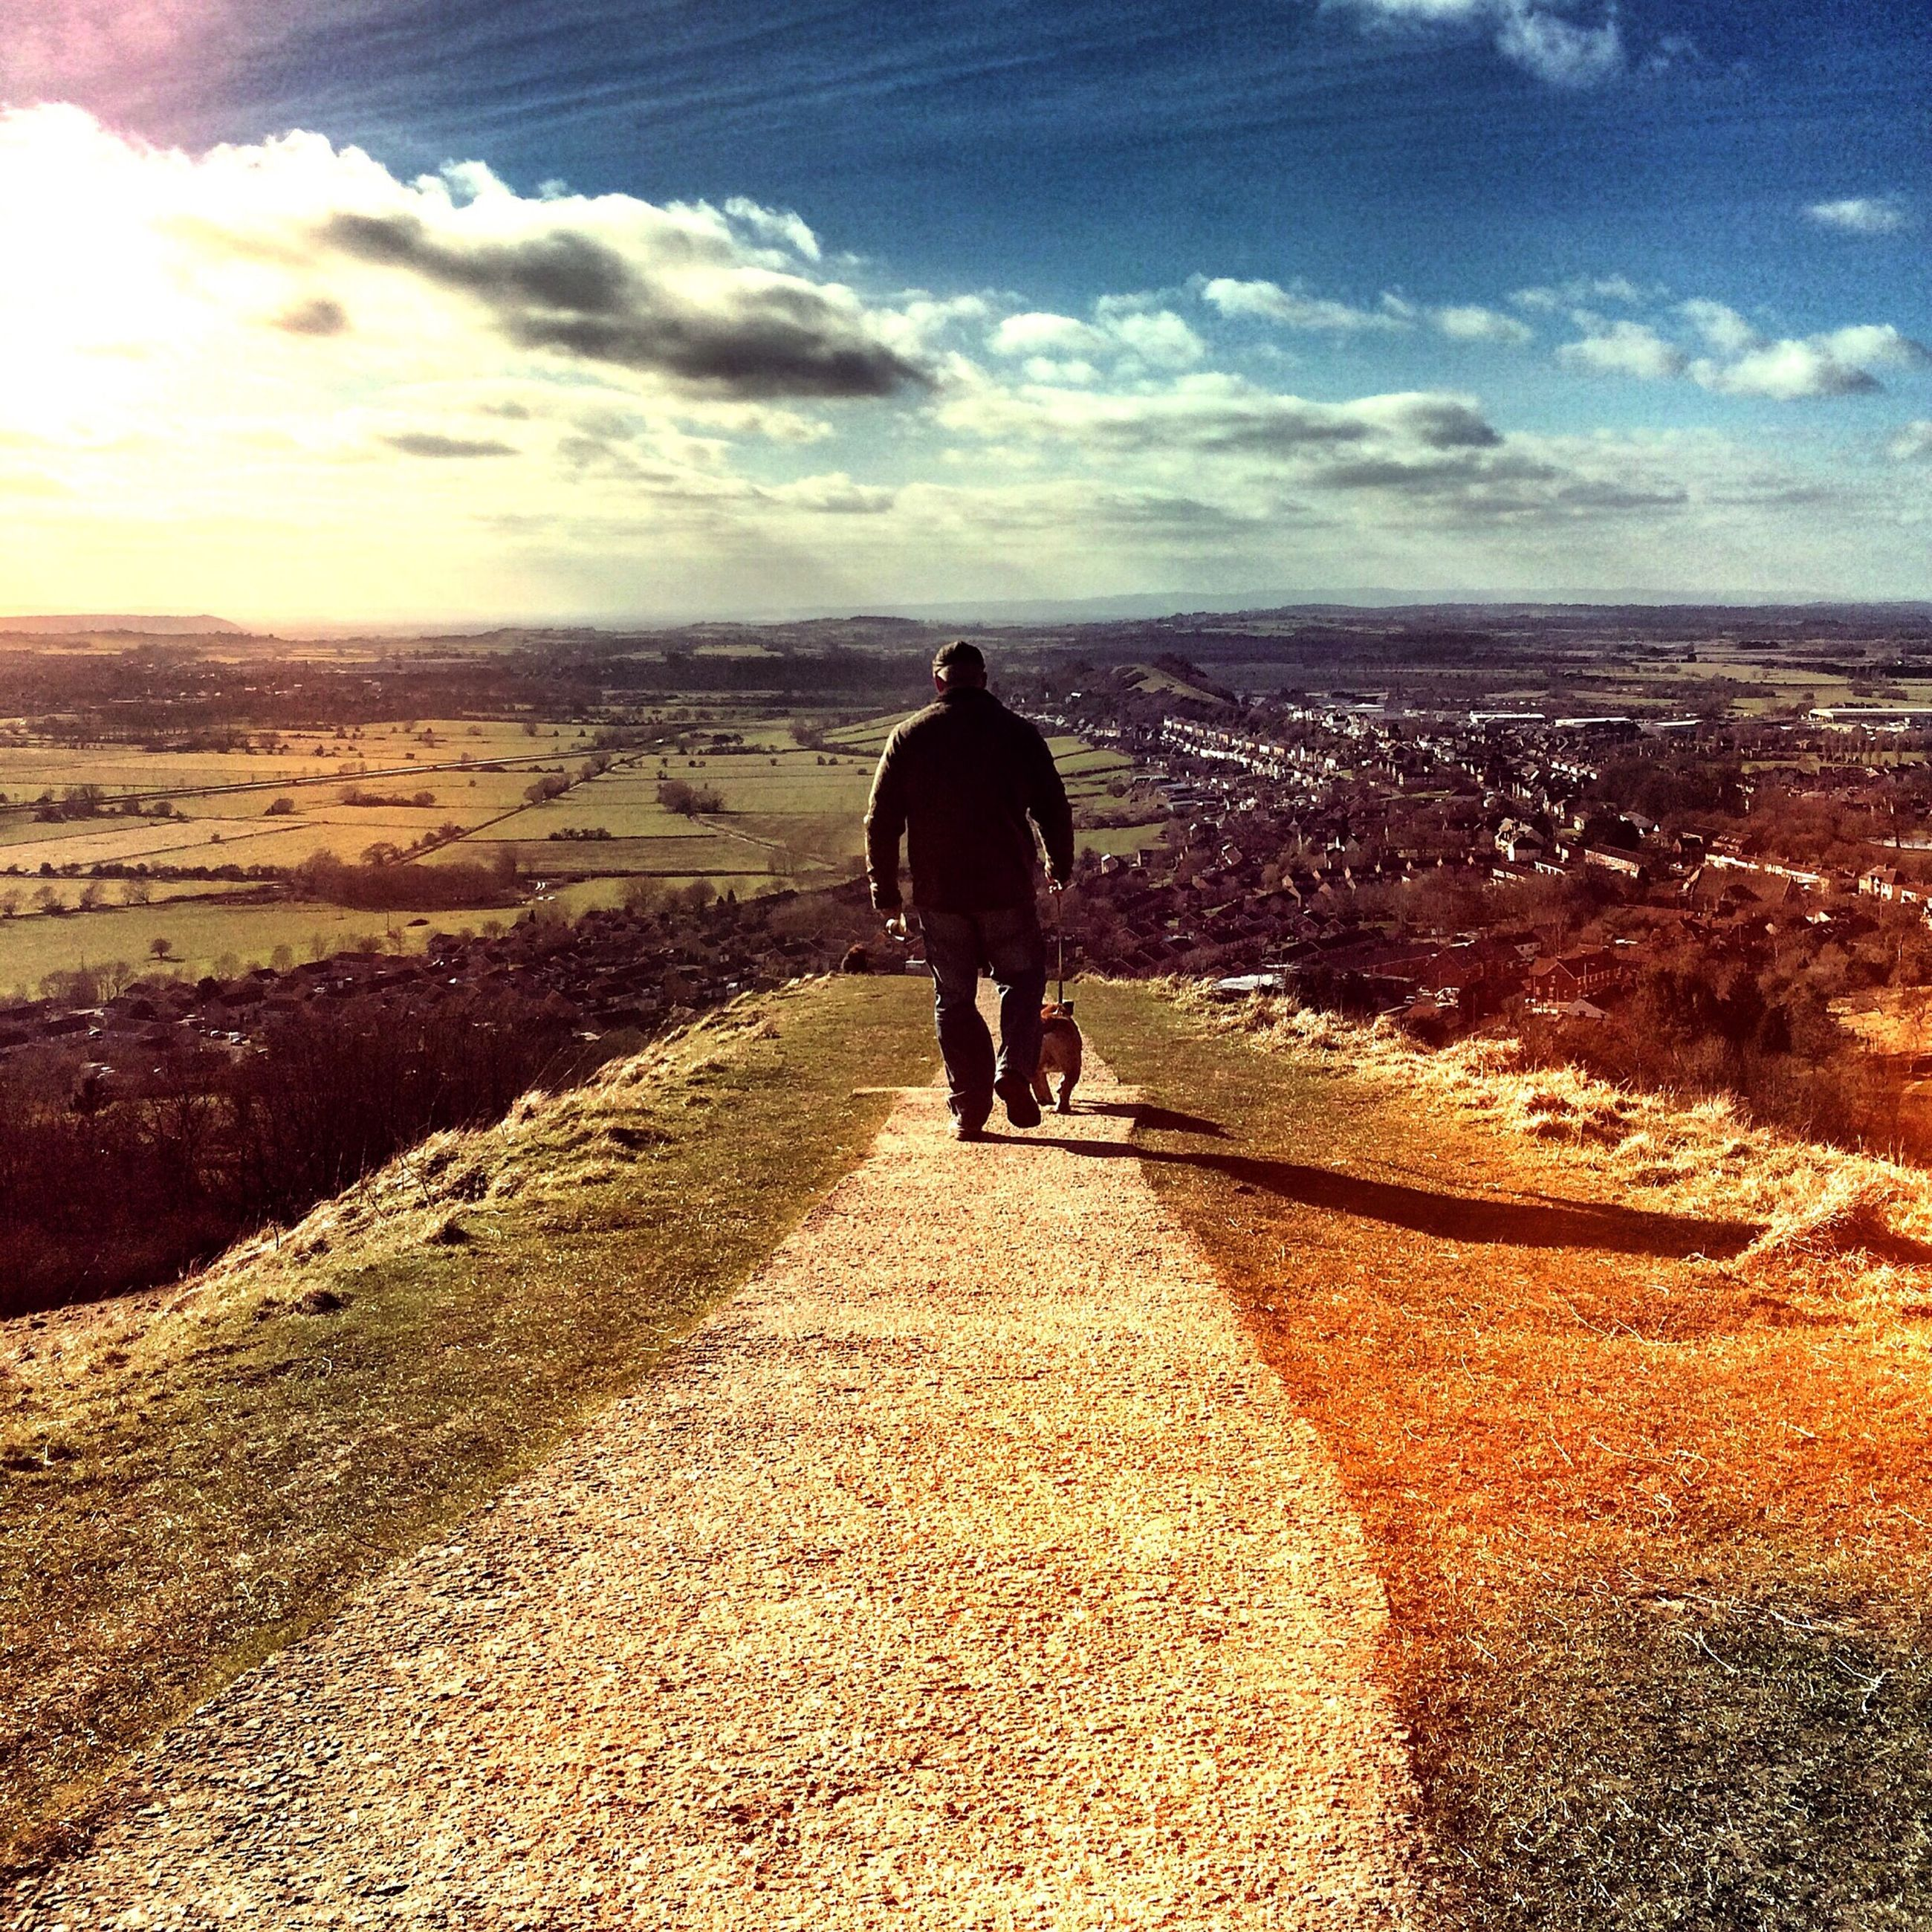 sky, rear view, full length, walking, lifestyles, the way forward, cloud - sky, leisure activity, men, person, standing, cloud, casual clothing, sunlight, road, outdoors, landscape, day